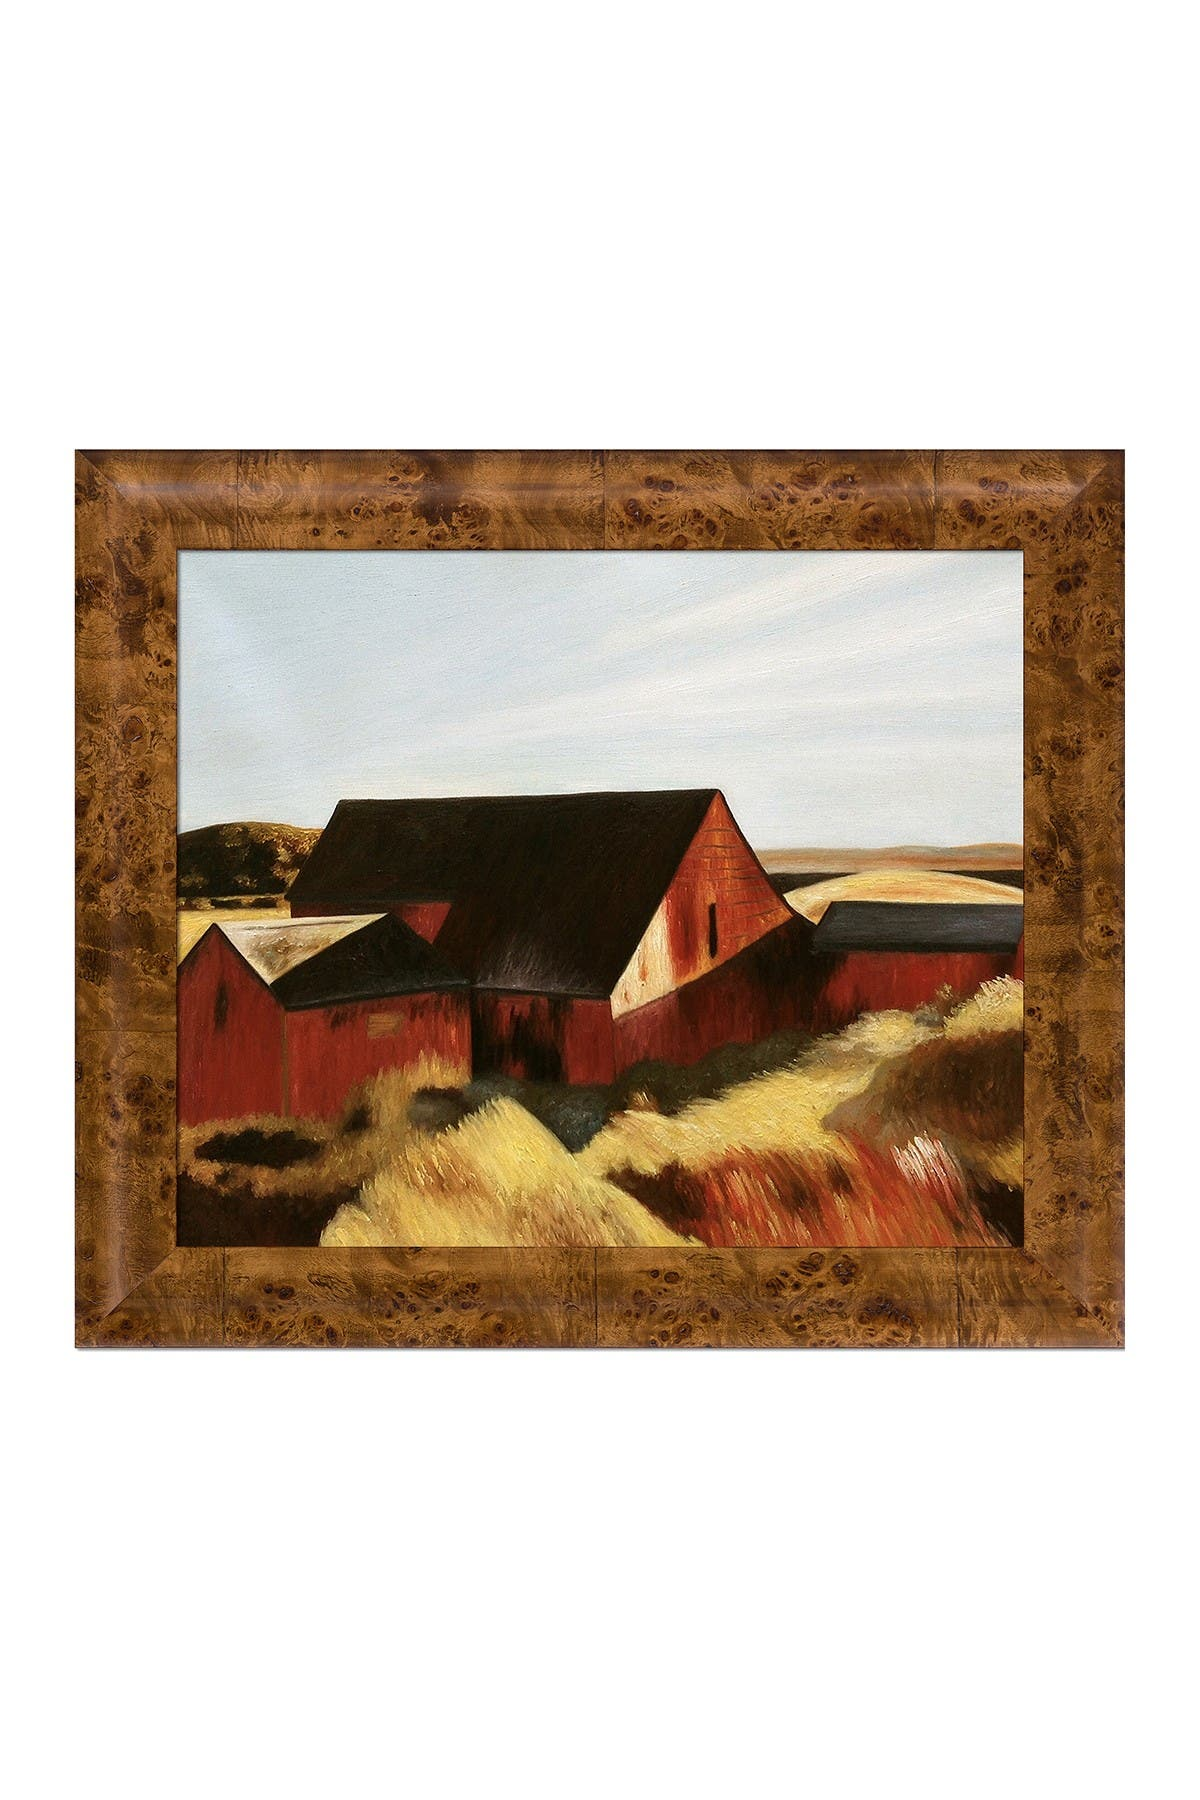 Image of Overstock Art Cobb's Barns, South Truro, 1933 - Framed Oil Reproduction of an Original Painting by Edward Hopper